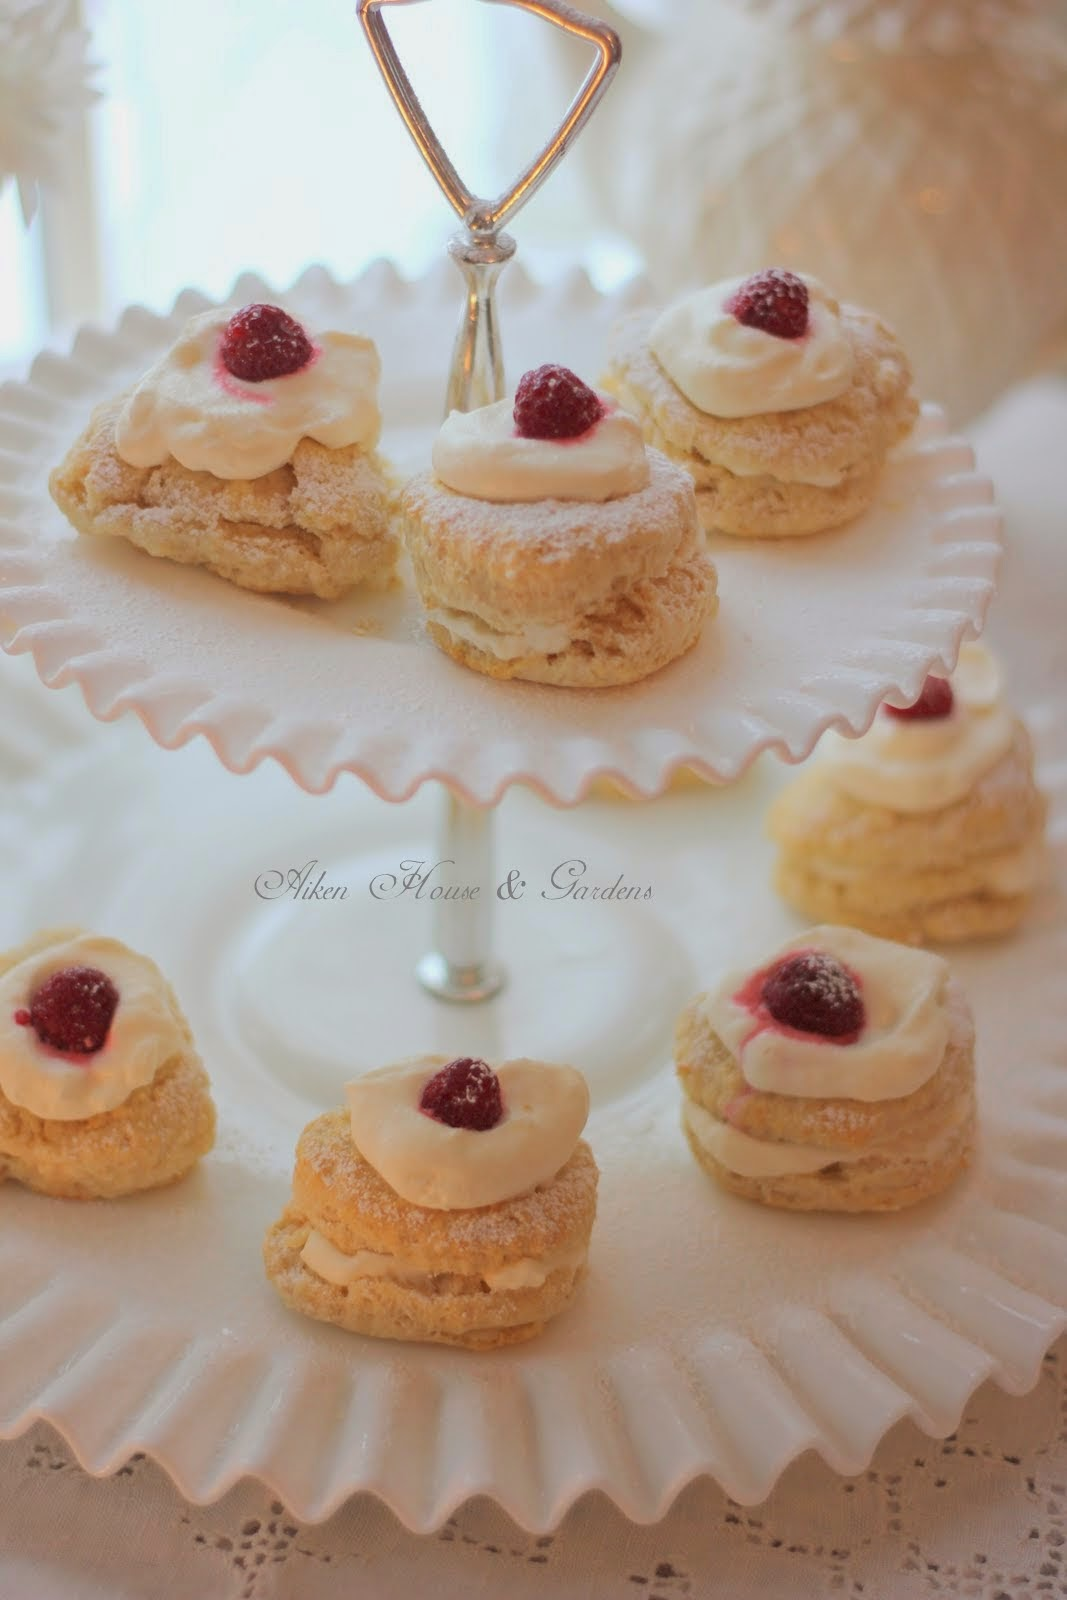 My Scones recipe was mentioned on Aiken House & Gardens blog